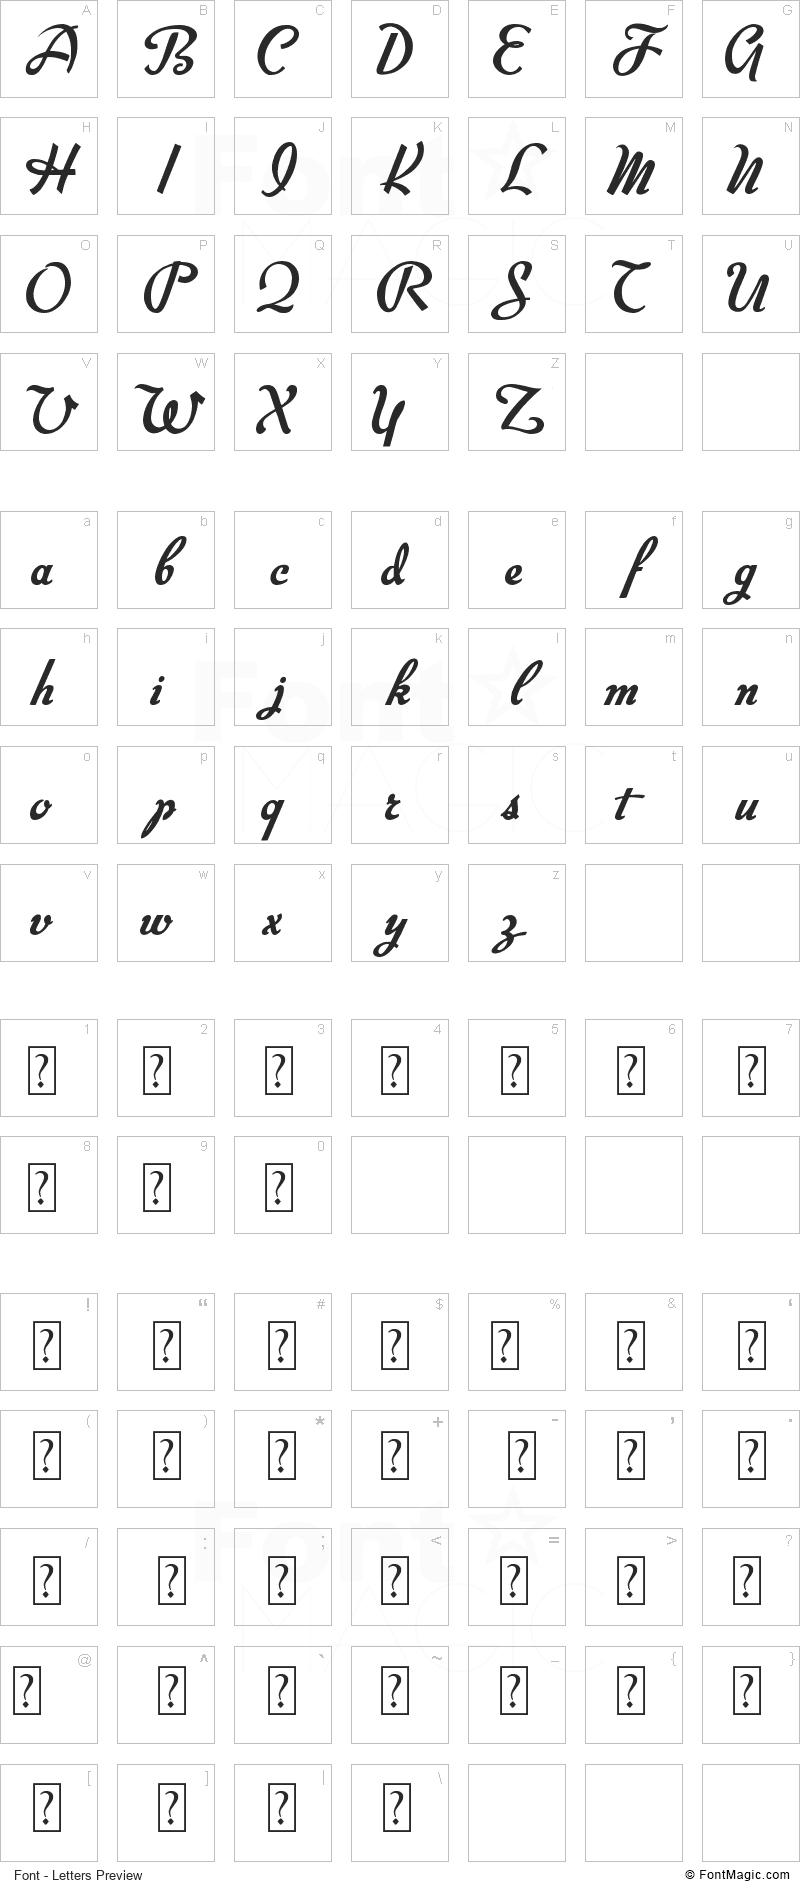 Big Surprise Font - All Latters Preview Chart